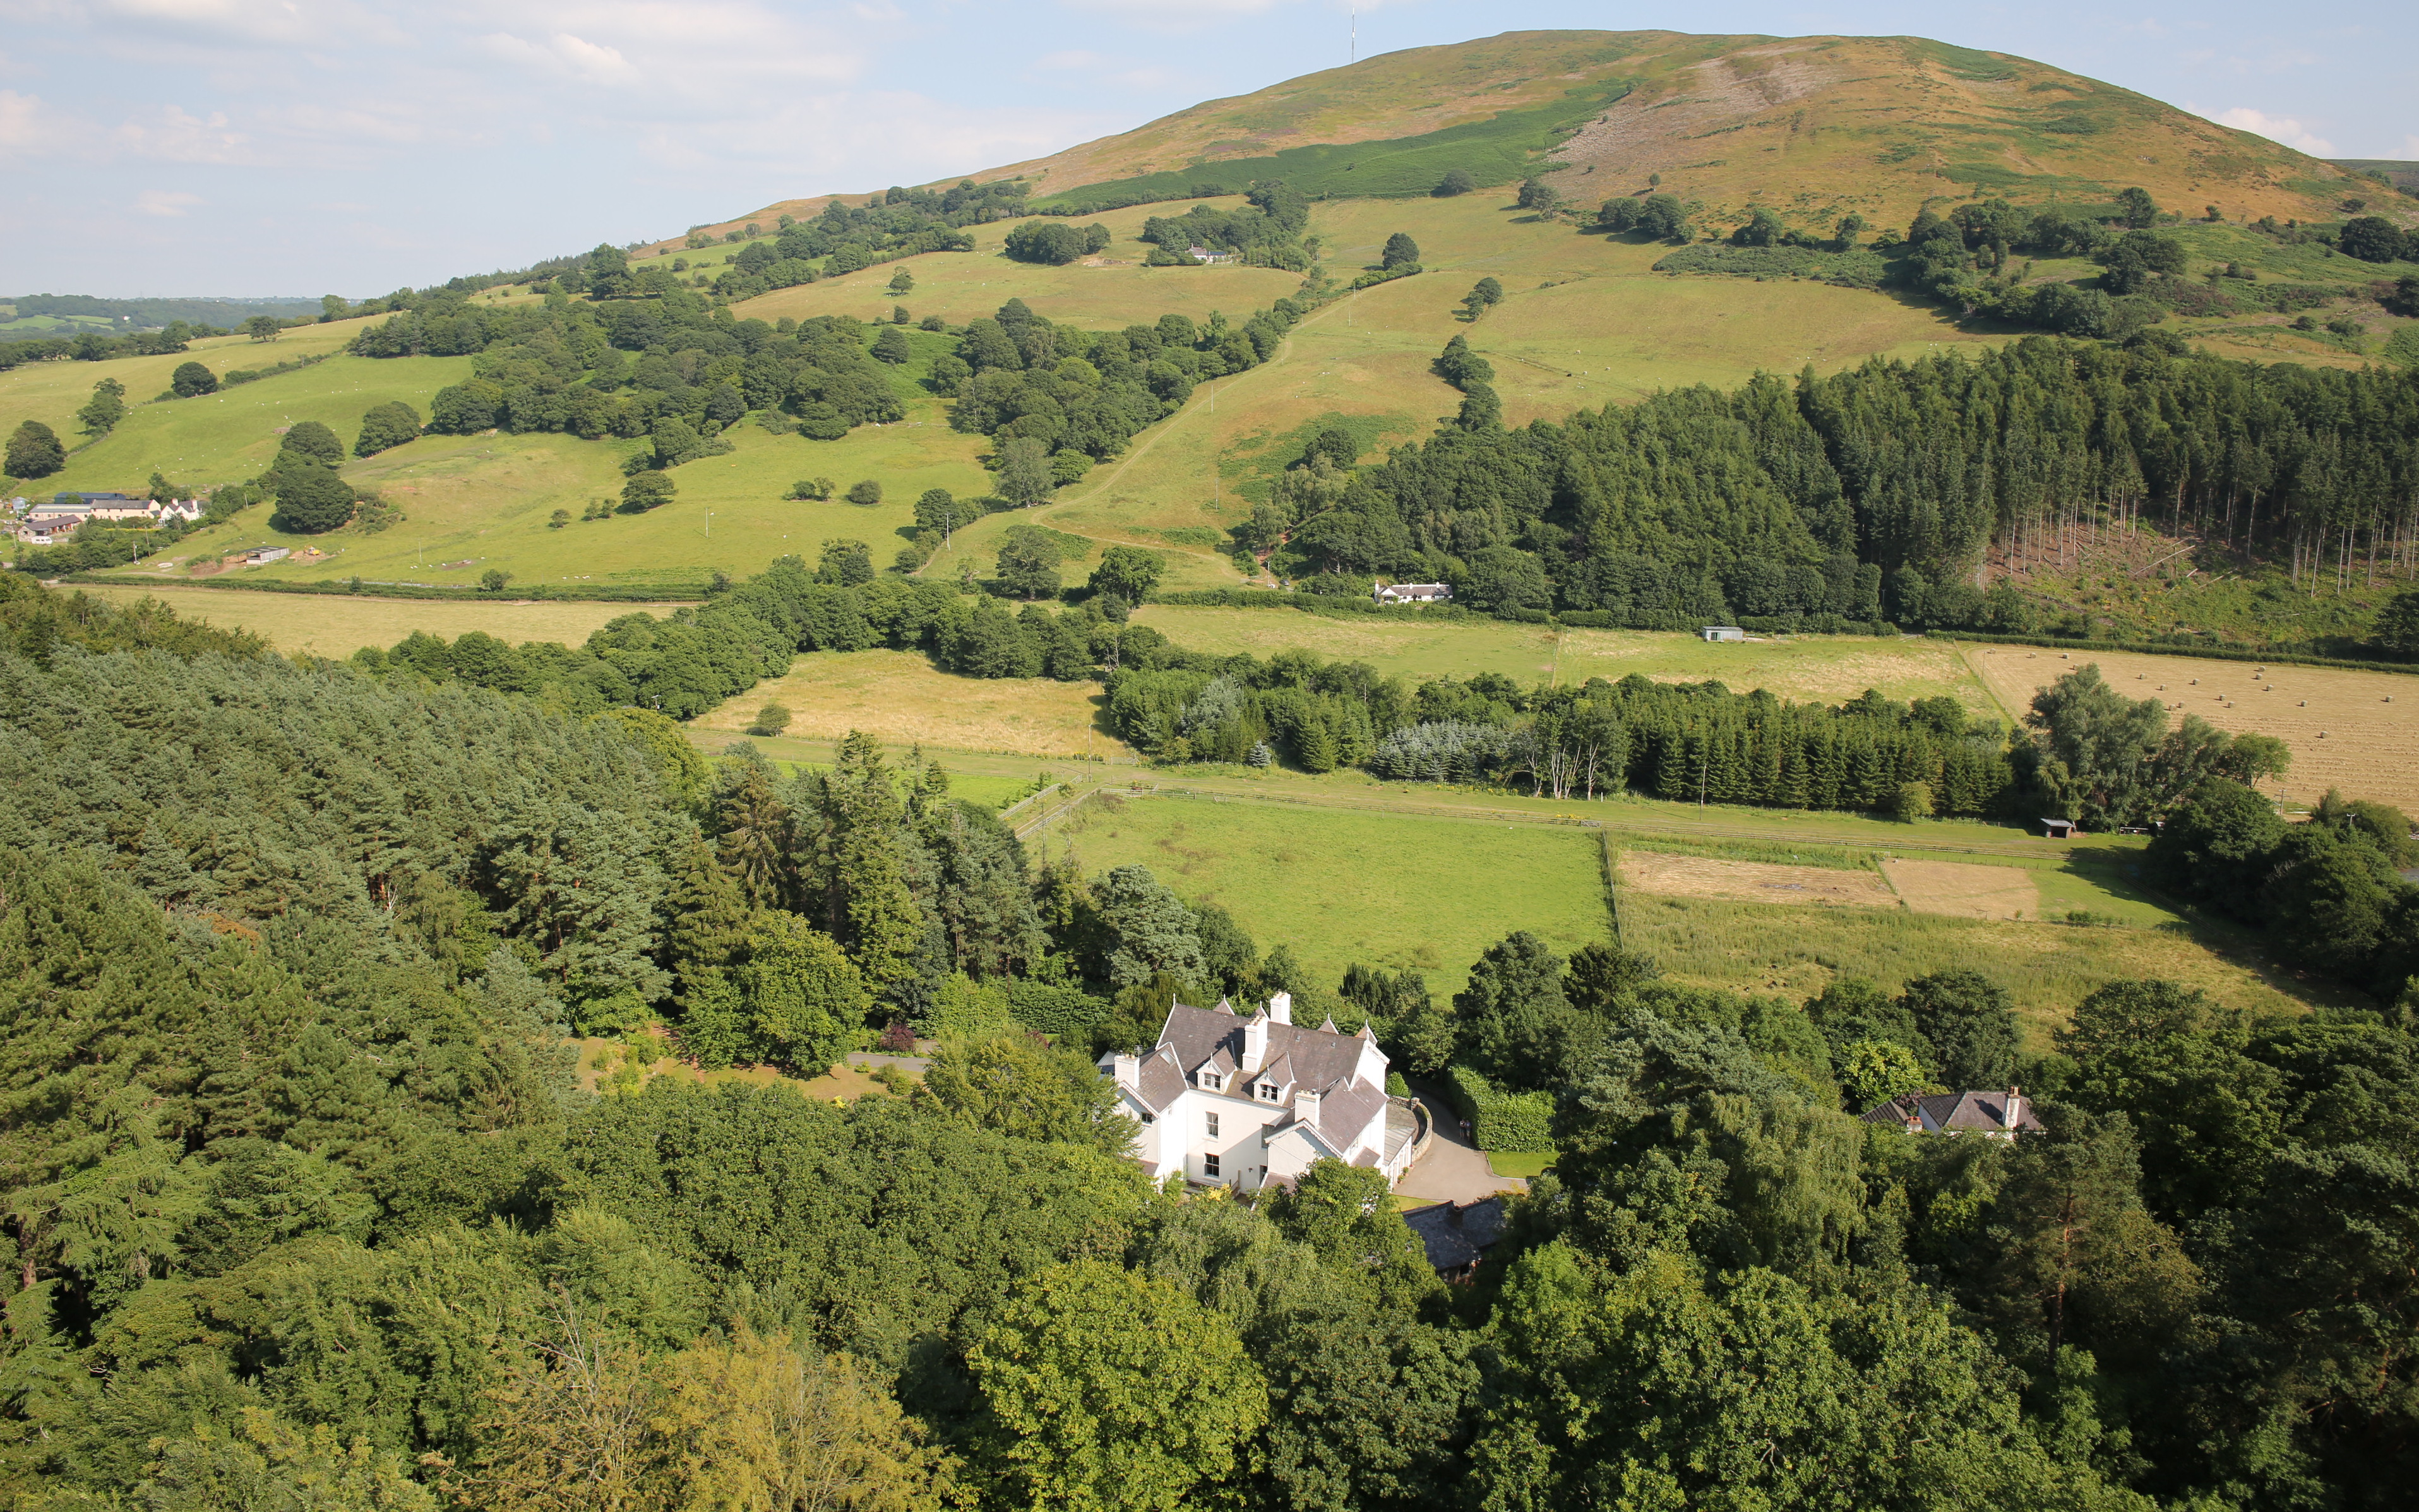 Drone-property-photograph-longstaff-media-north-wales.JPG#asset:478